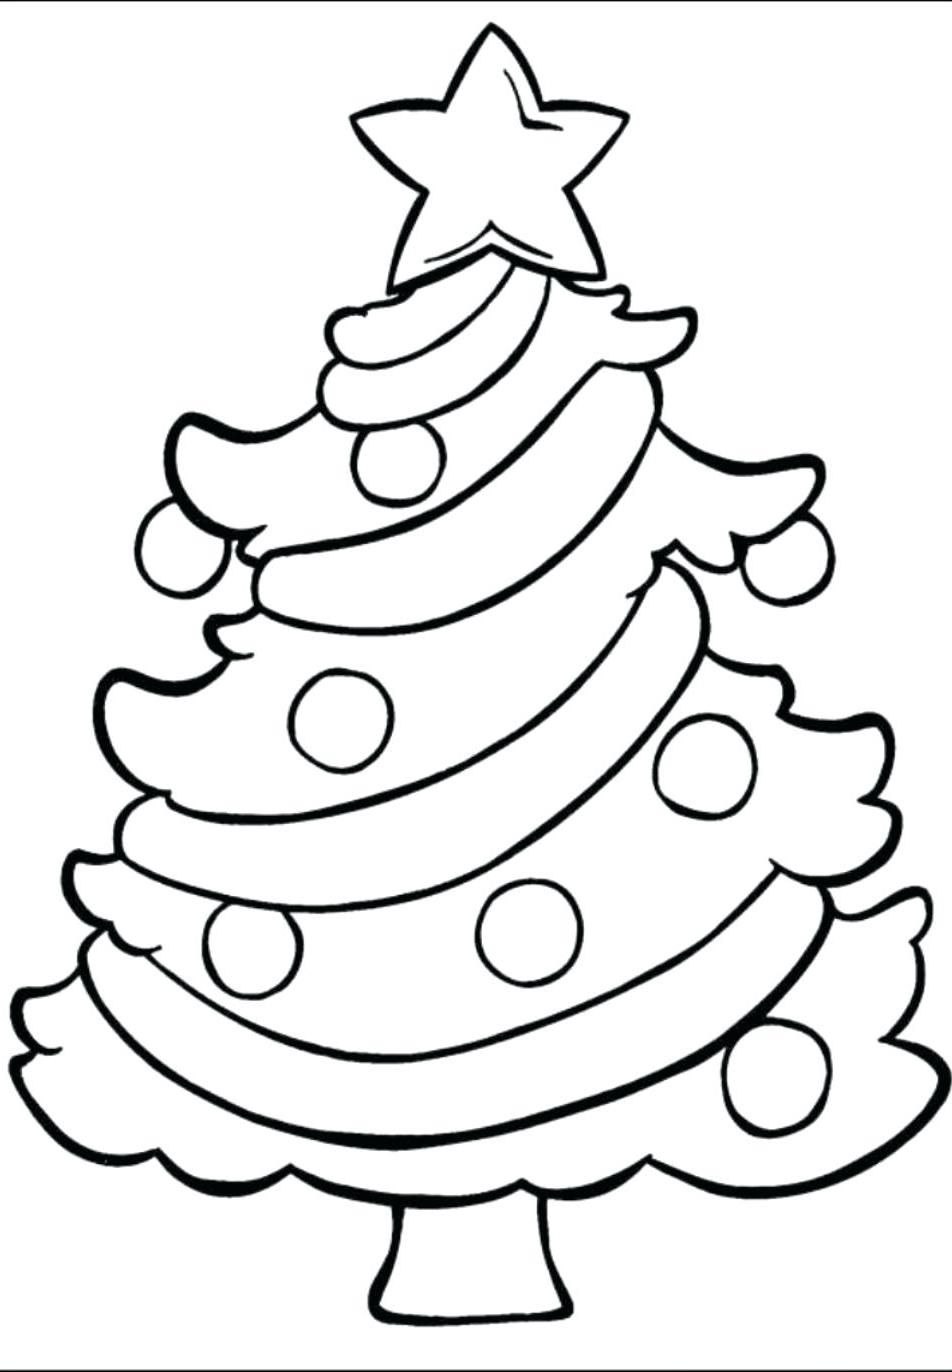 creative christmas drawing ideas for kids christmas drawing chris printable christmas coloring pages christmas tree coloring page free christmas coloring pages printable christmas coloring pages